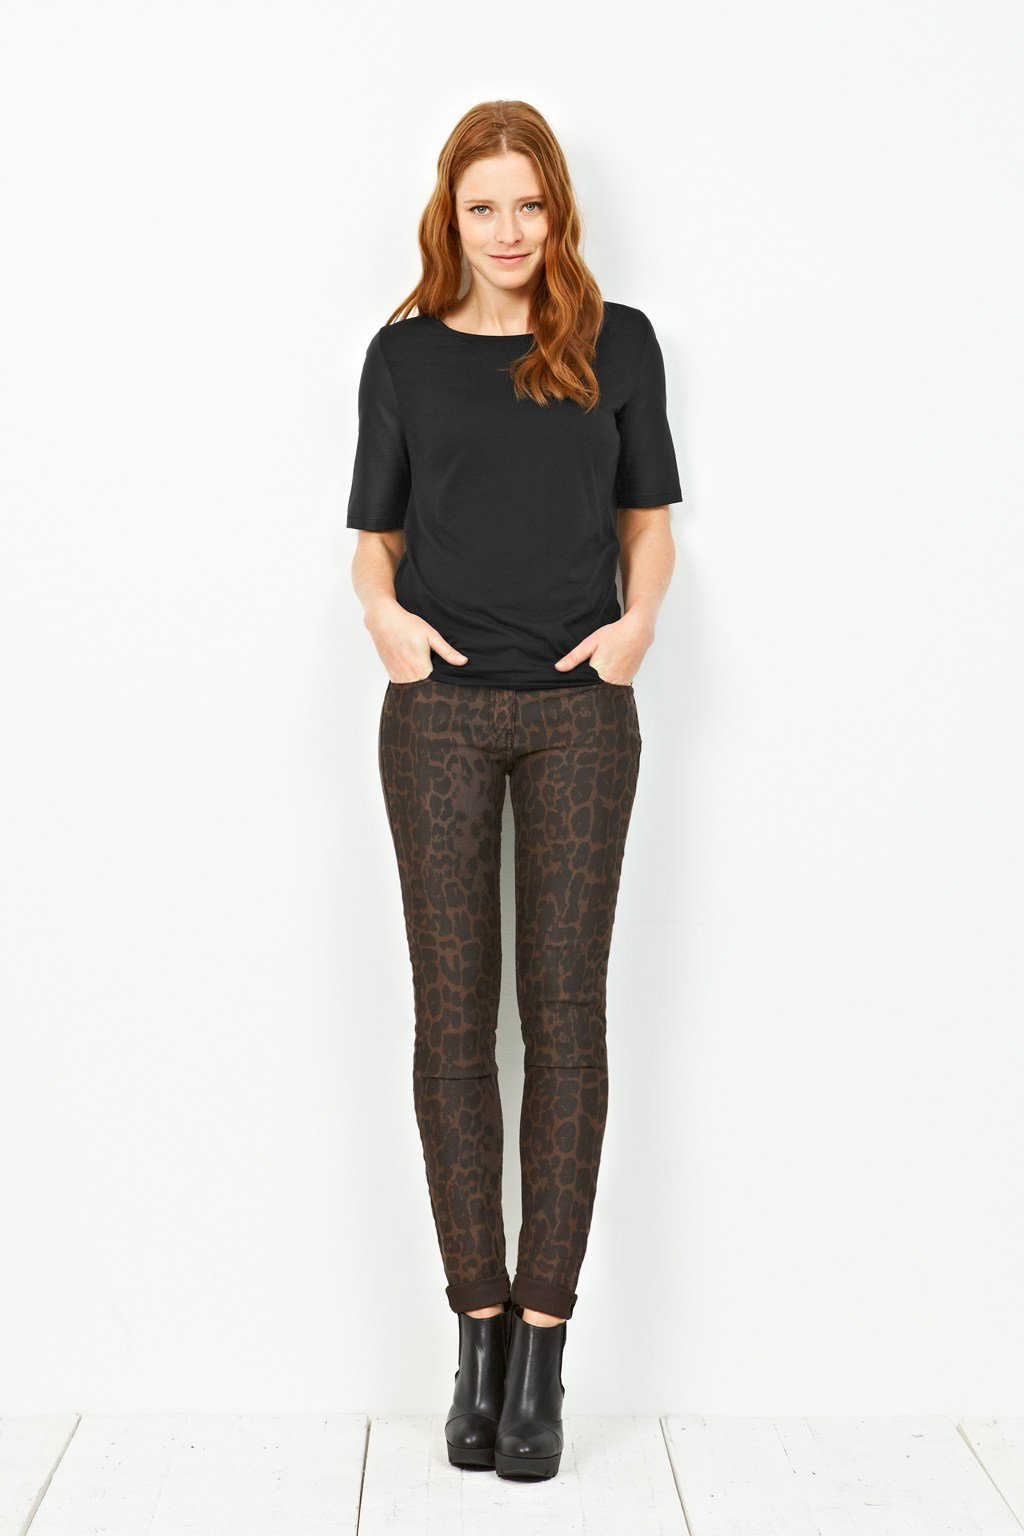 Buy Slim Leg Jean from Pure Collection: Discover our best-selling slim leg women's jeans, in a cotton rich stretch fabric, and a figure-flattering style. Available in 7 colours and 3 leg .